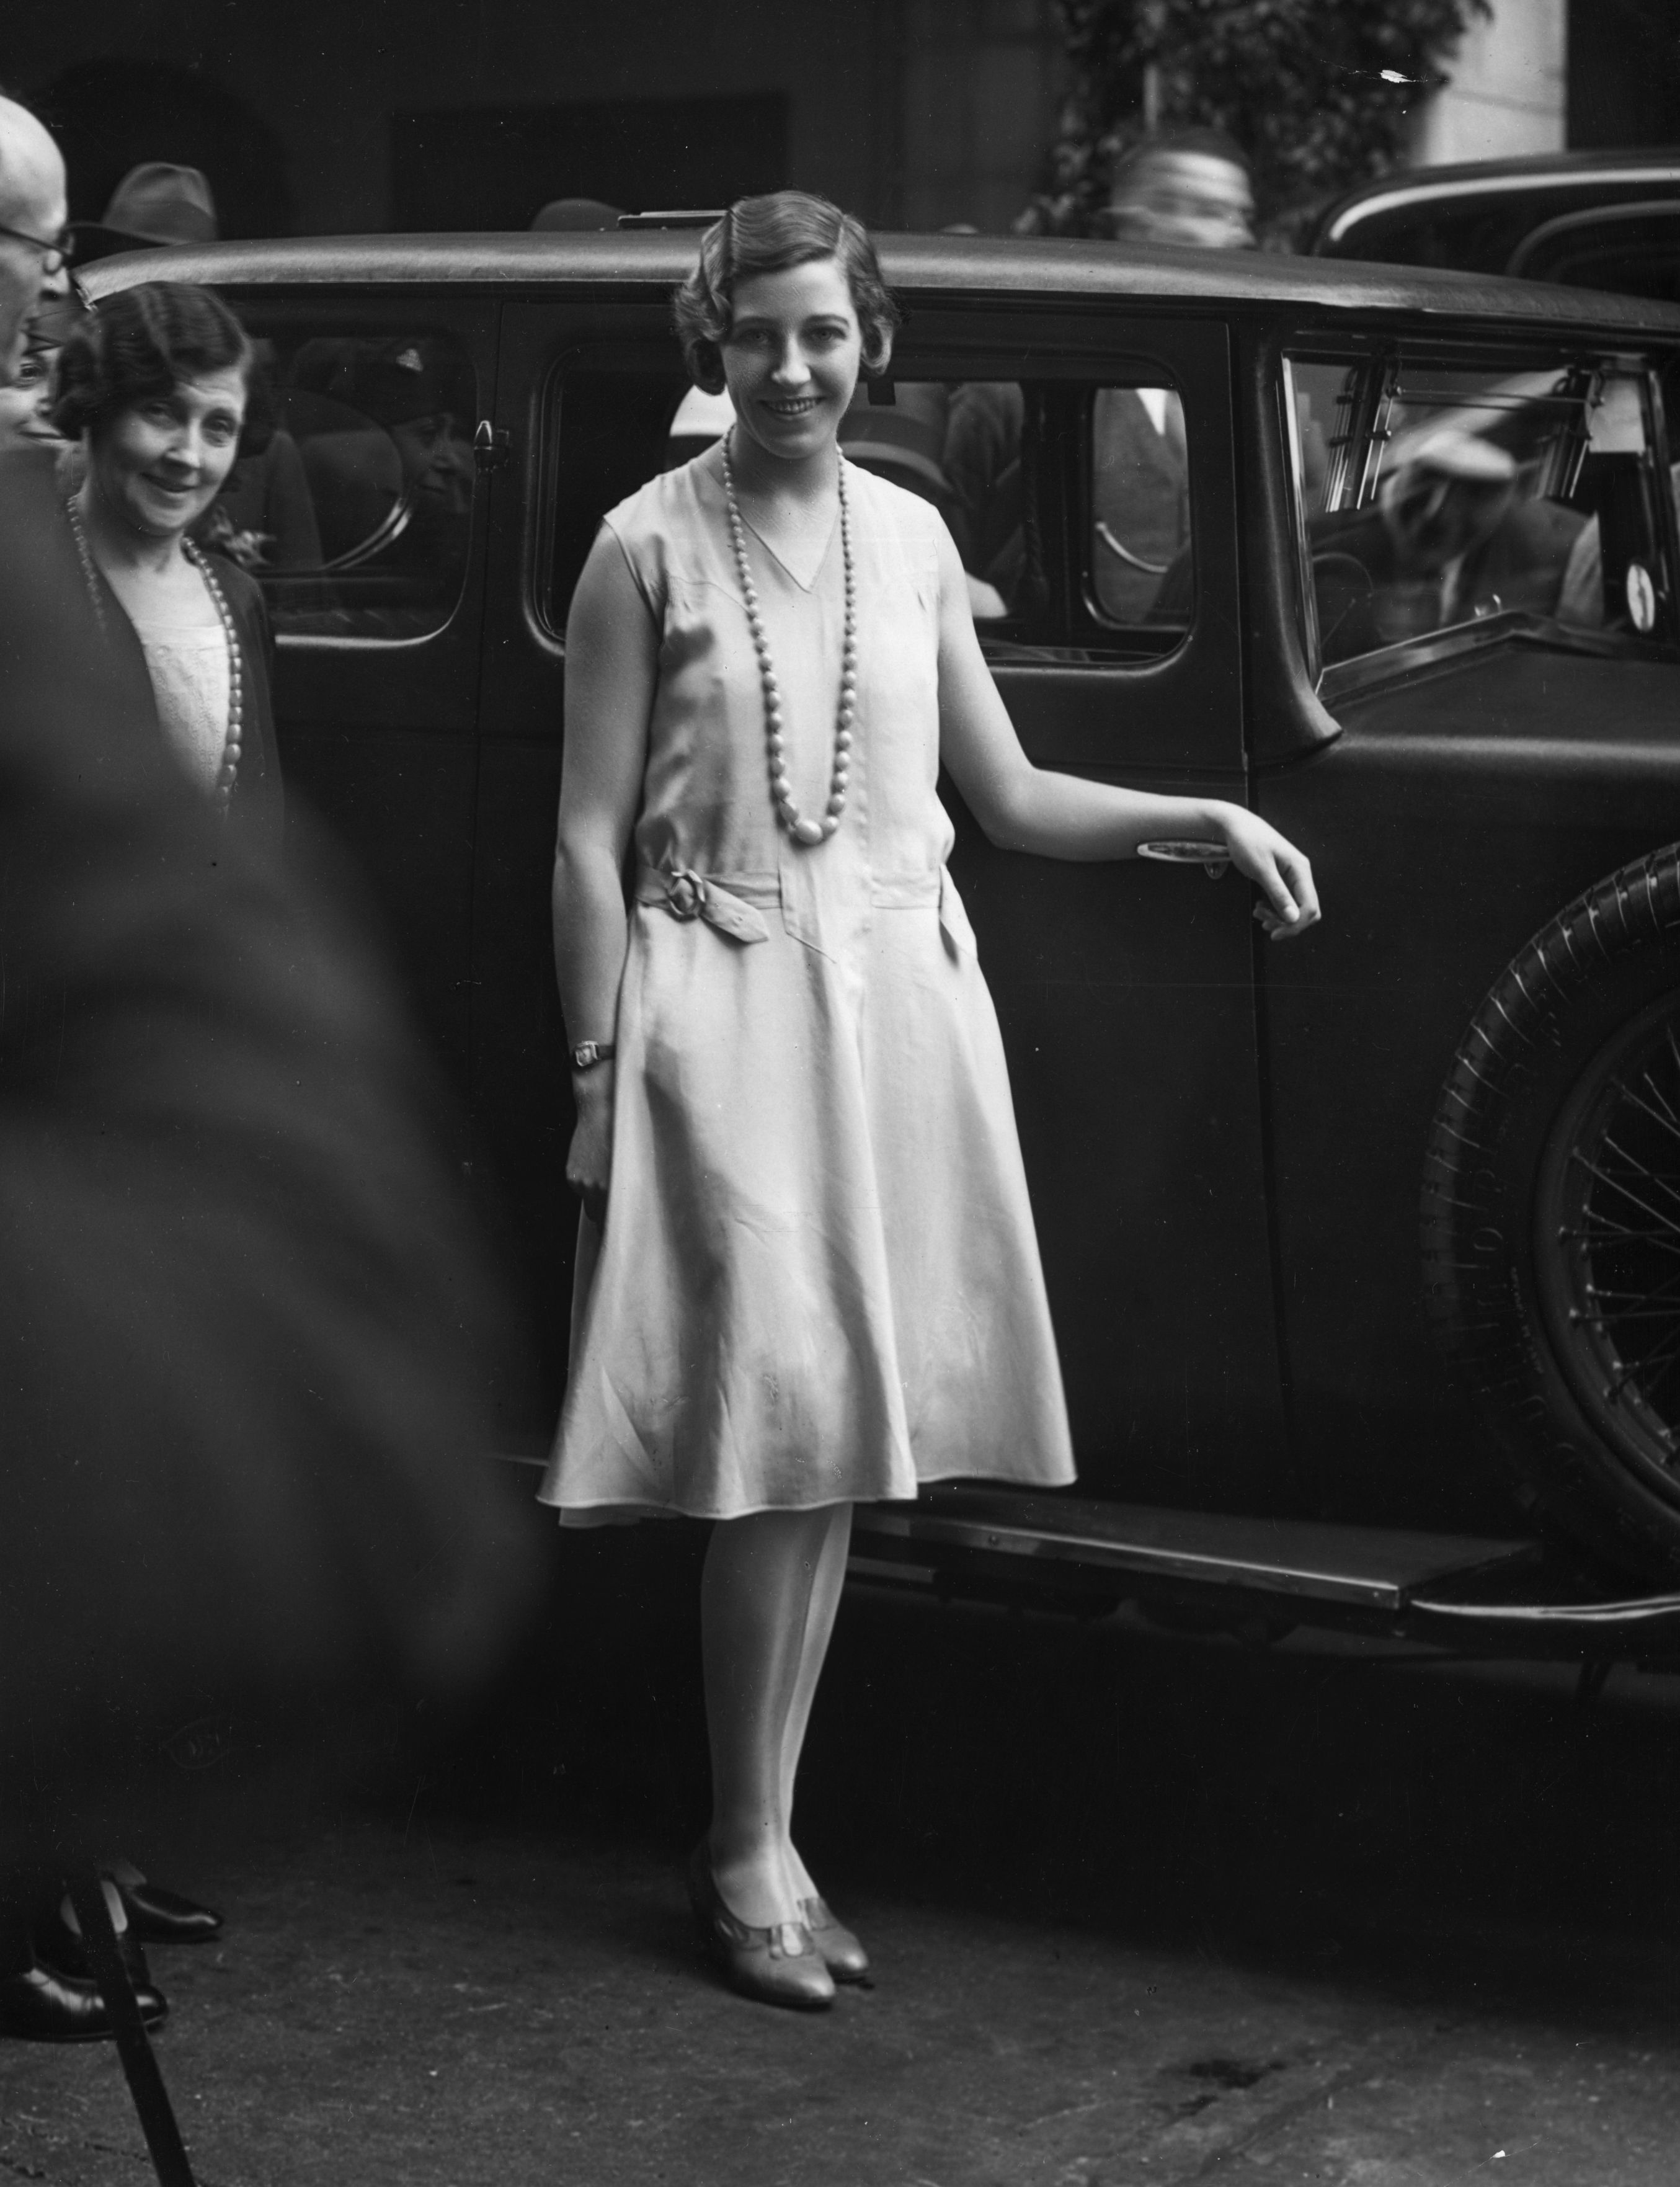 July 1930: British aviation pioneer Amy Johnson (1903 - 1941) arriving at a function in London. (Photo by Sasha/Getty Images)